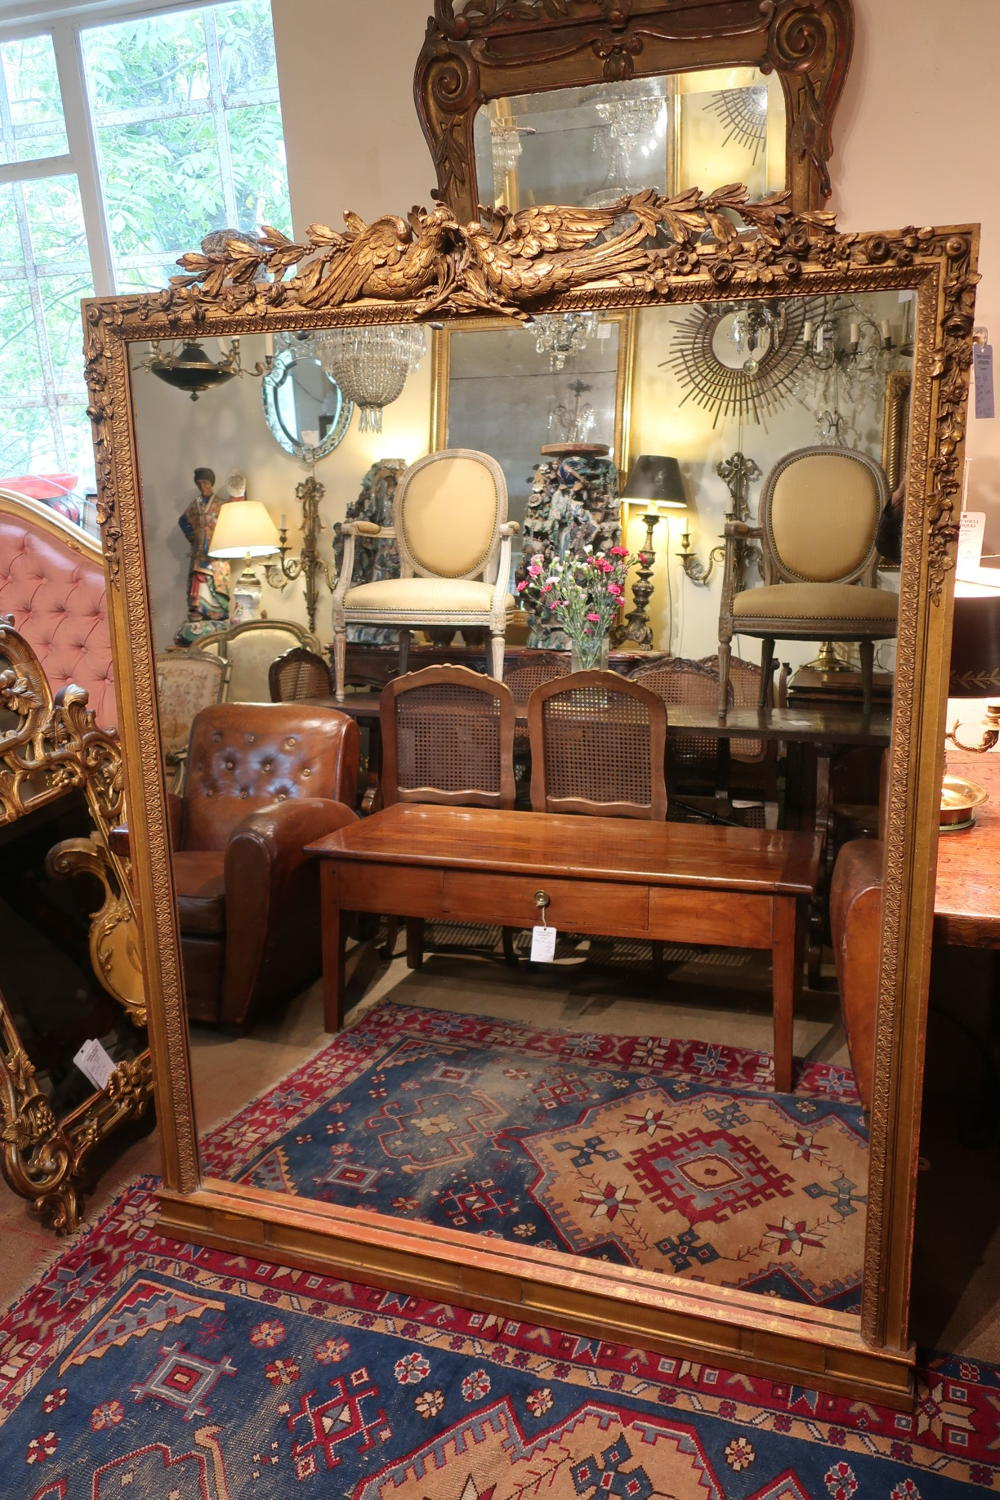 Large gilt mirror with lovebirds